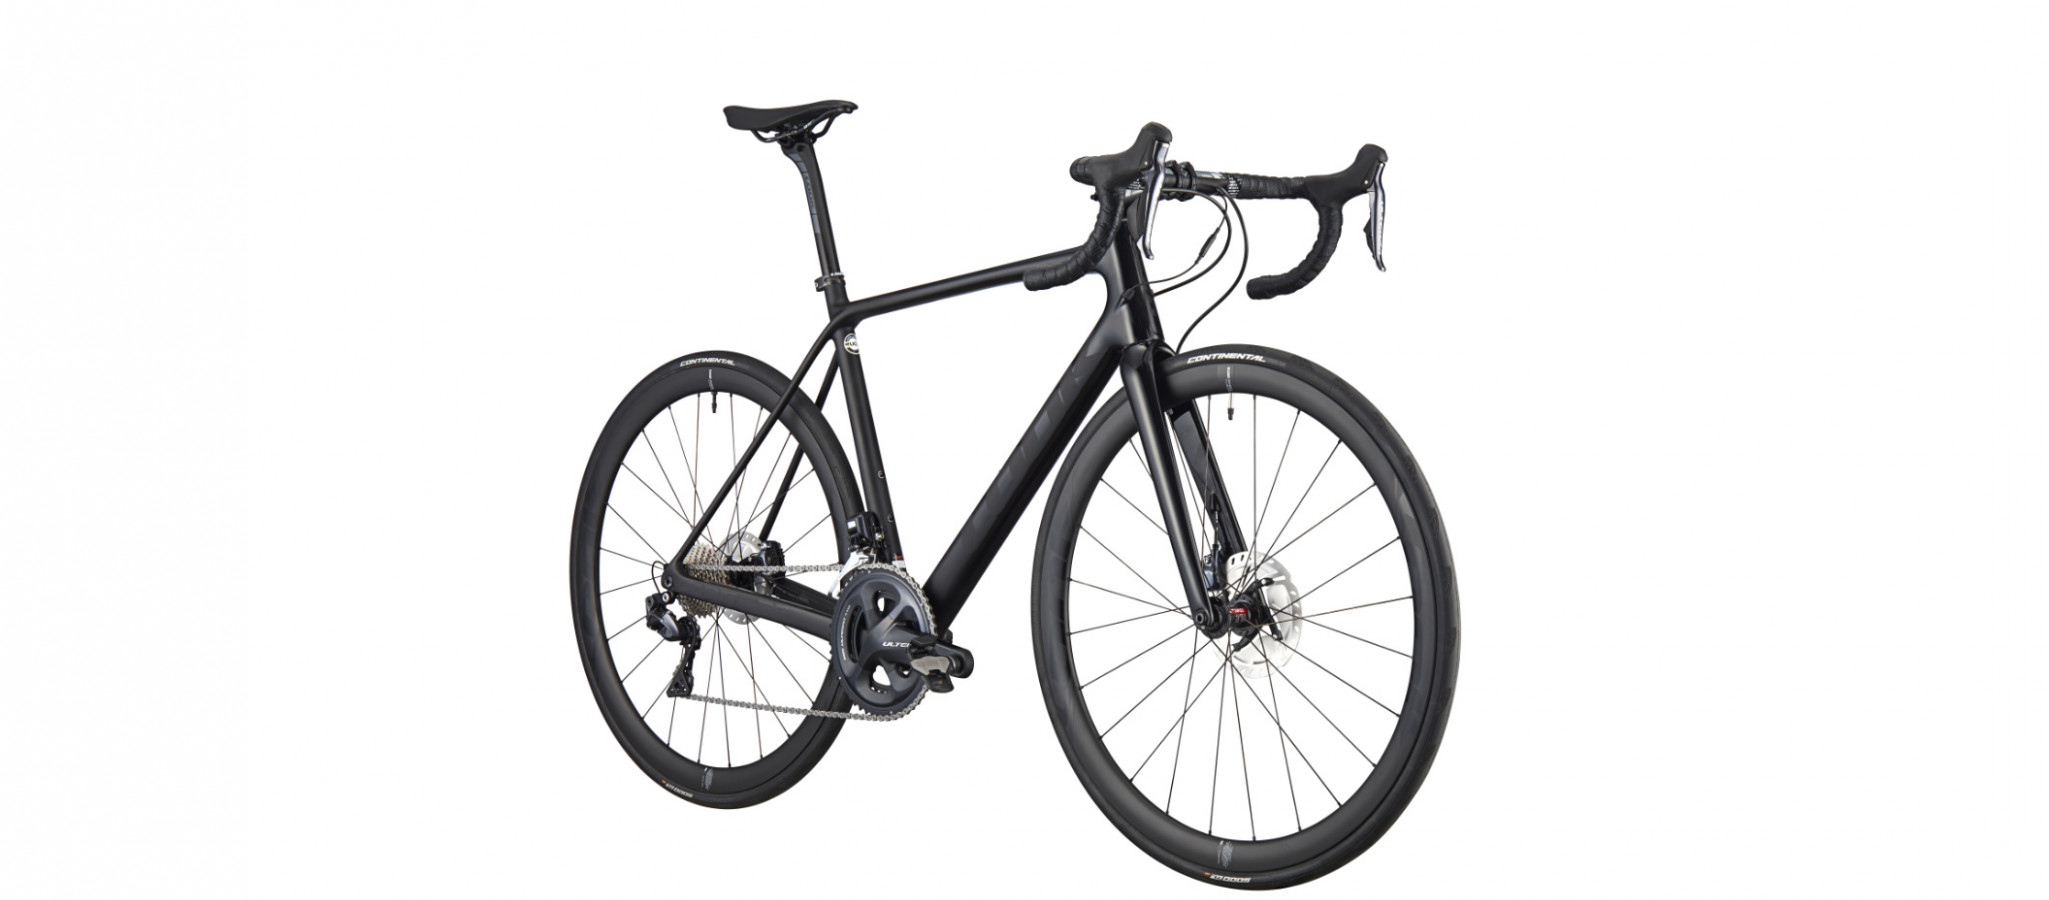 Cestno kolo 785 Huez RS Full black 2021